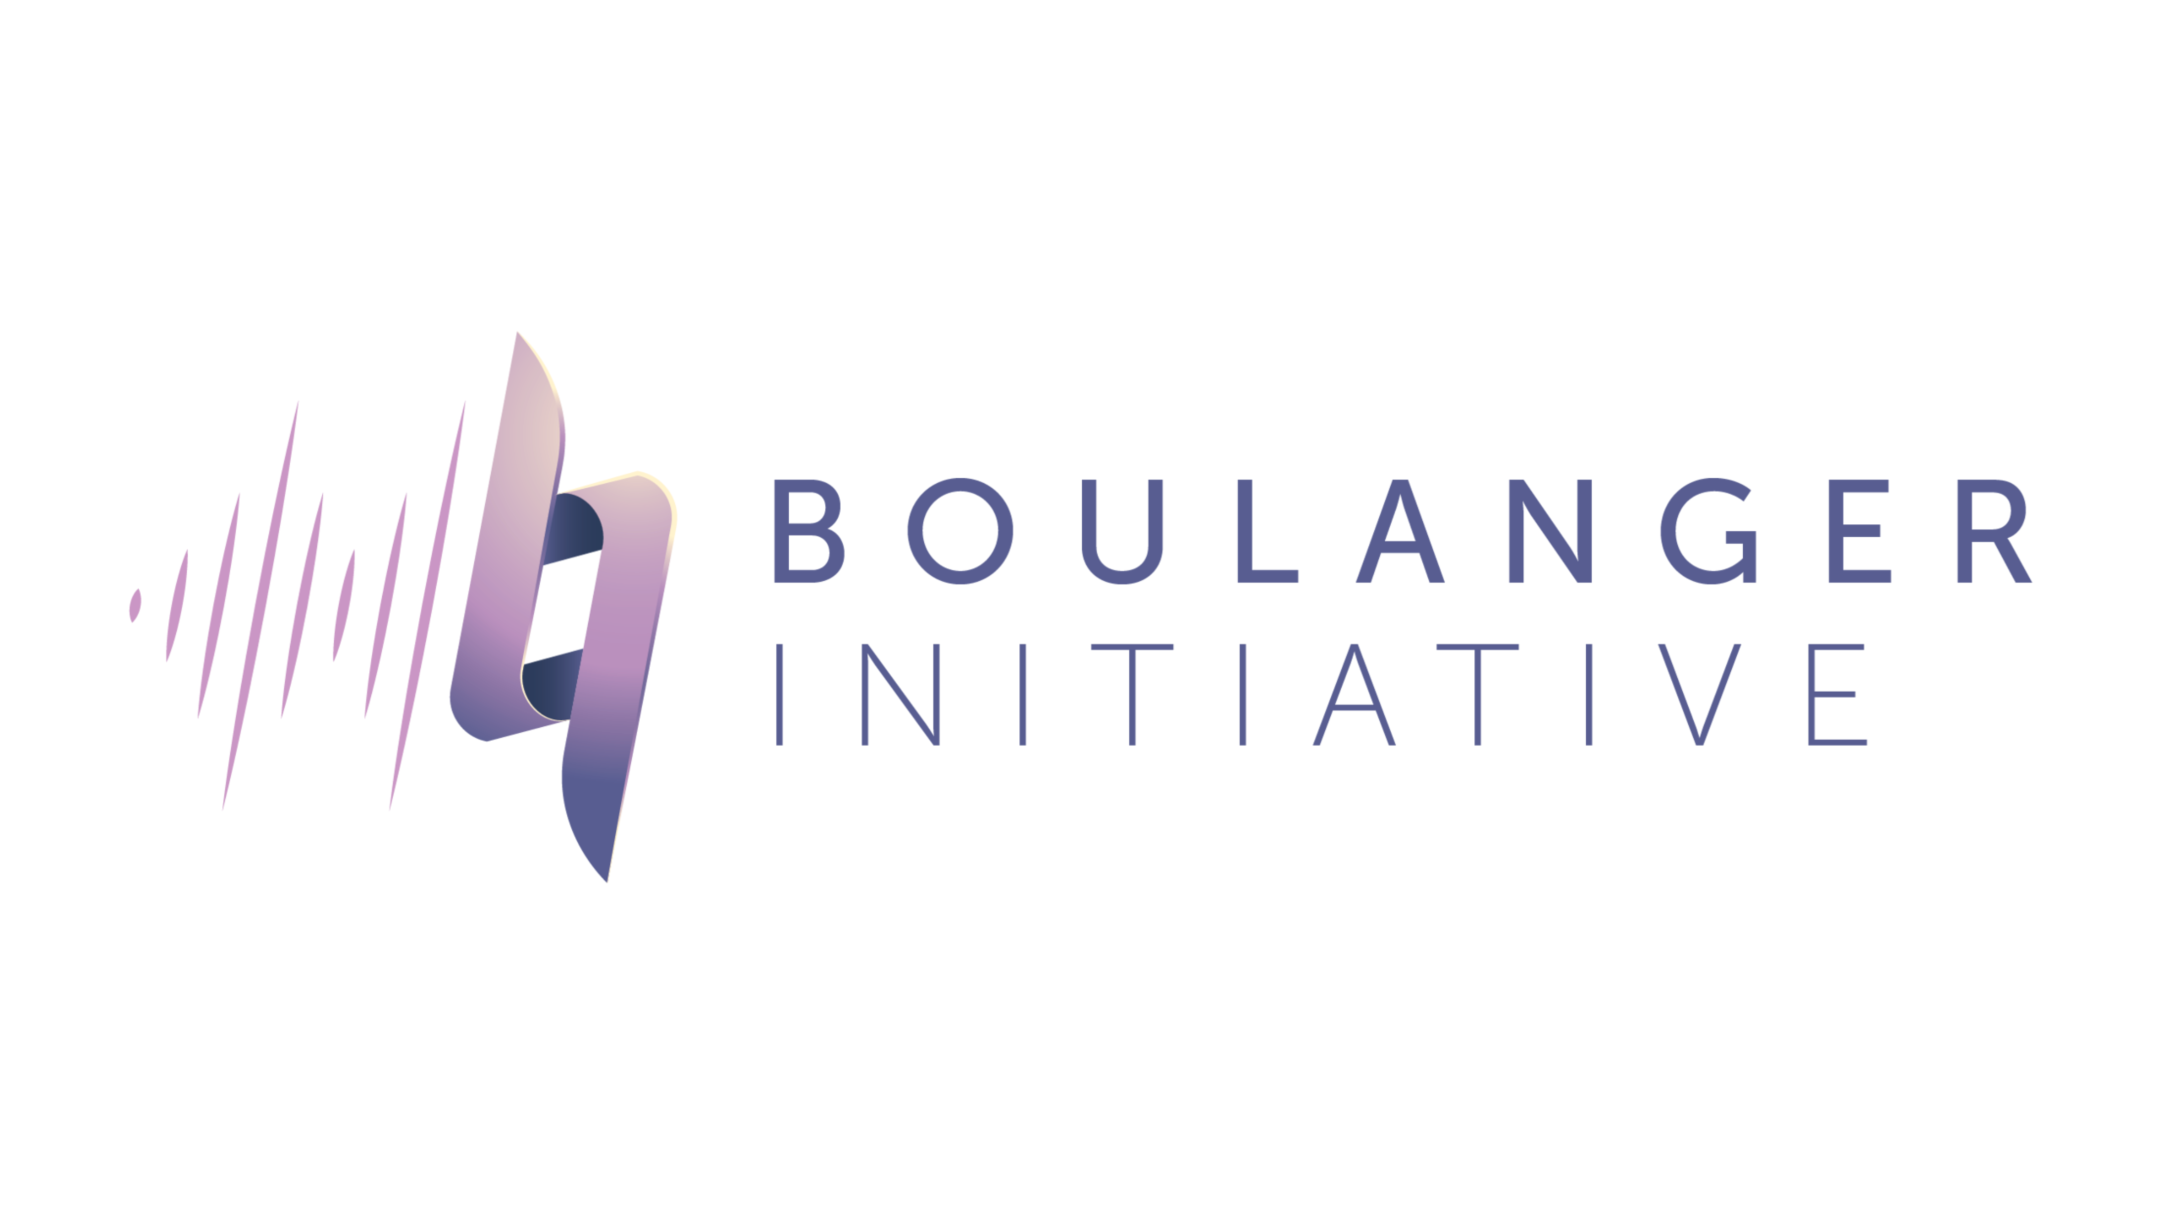 Started by Joy-Leilani Garbutt and Laura Colgate, the Boulanger Initiative seeks to promote music composed by women through concert series performances, educational lectures and publications, and commissioning projects.